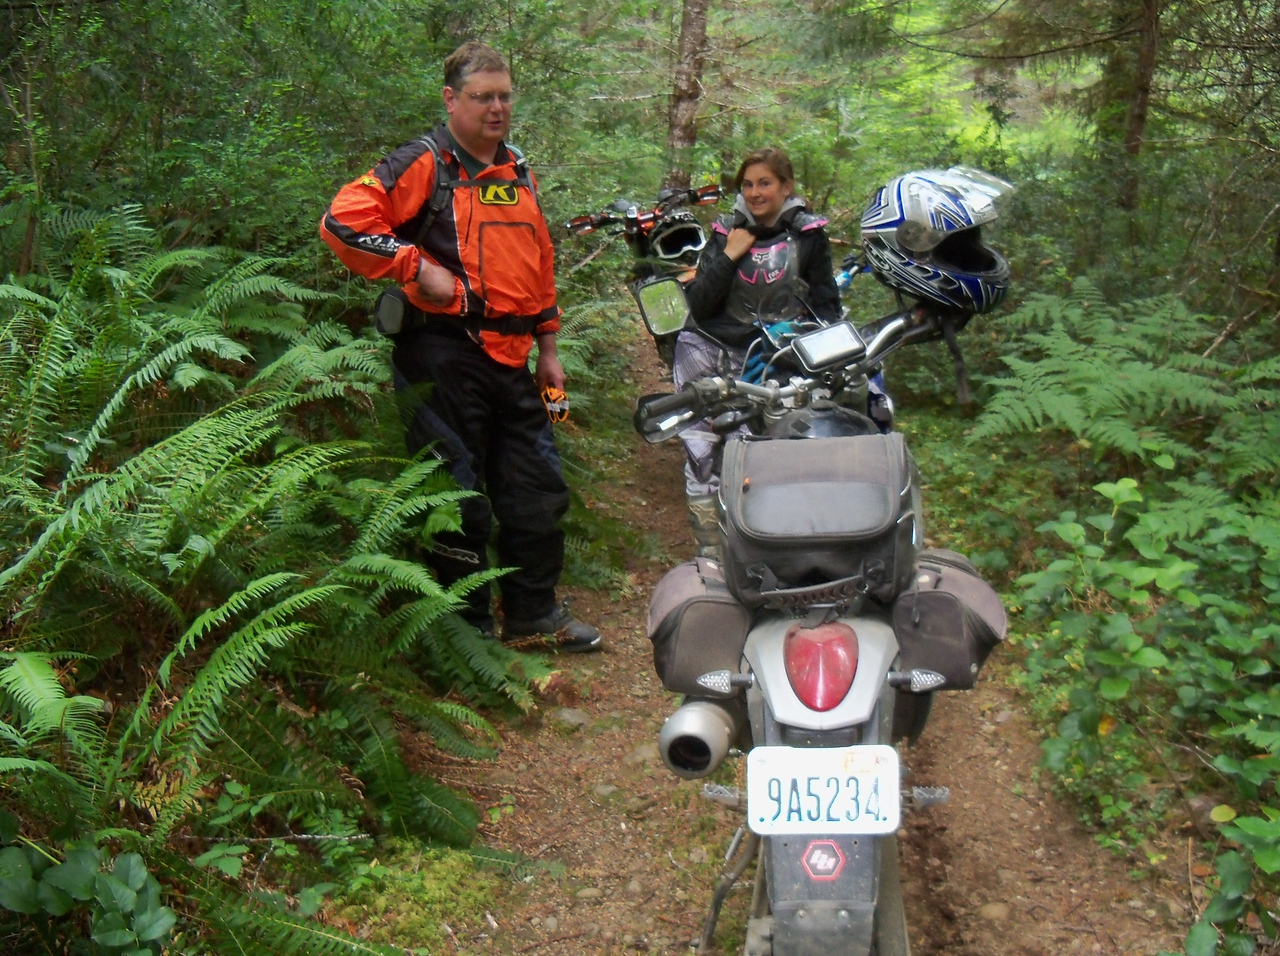 Anthony showed us some great riding in the Mason Lake Area...